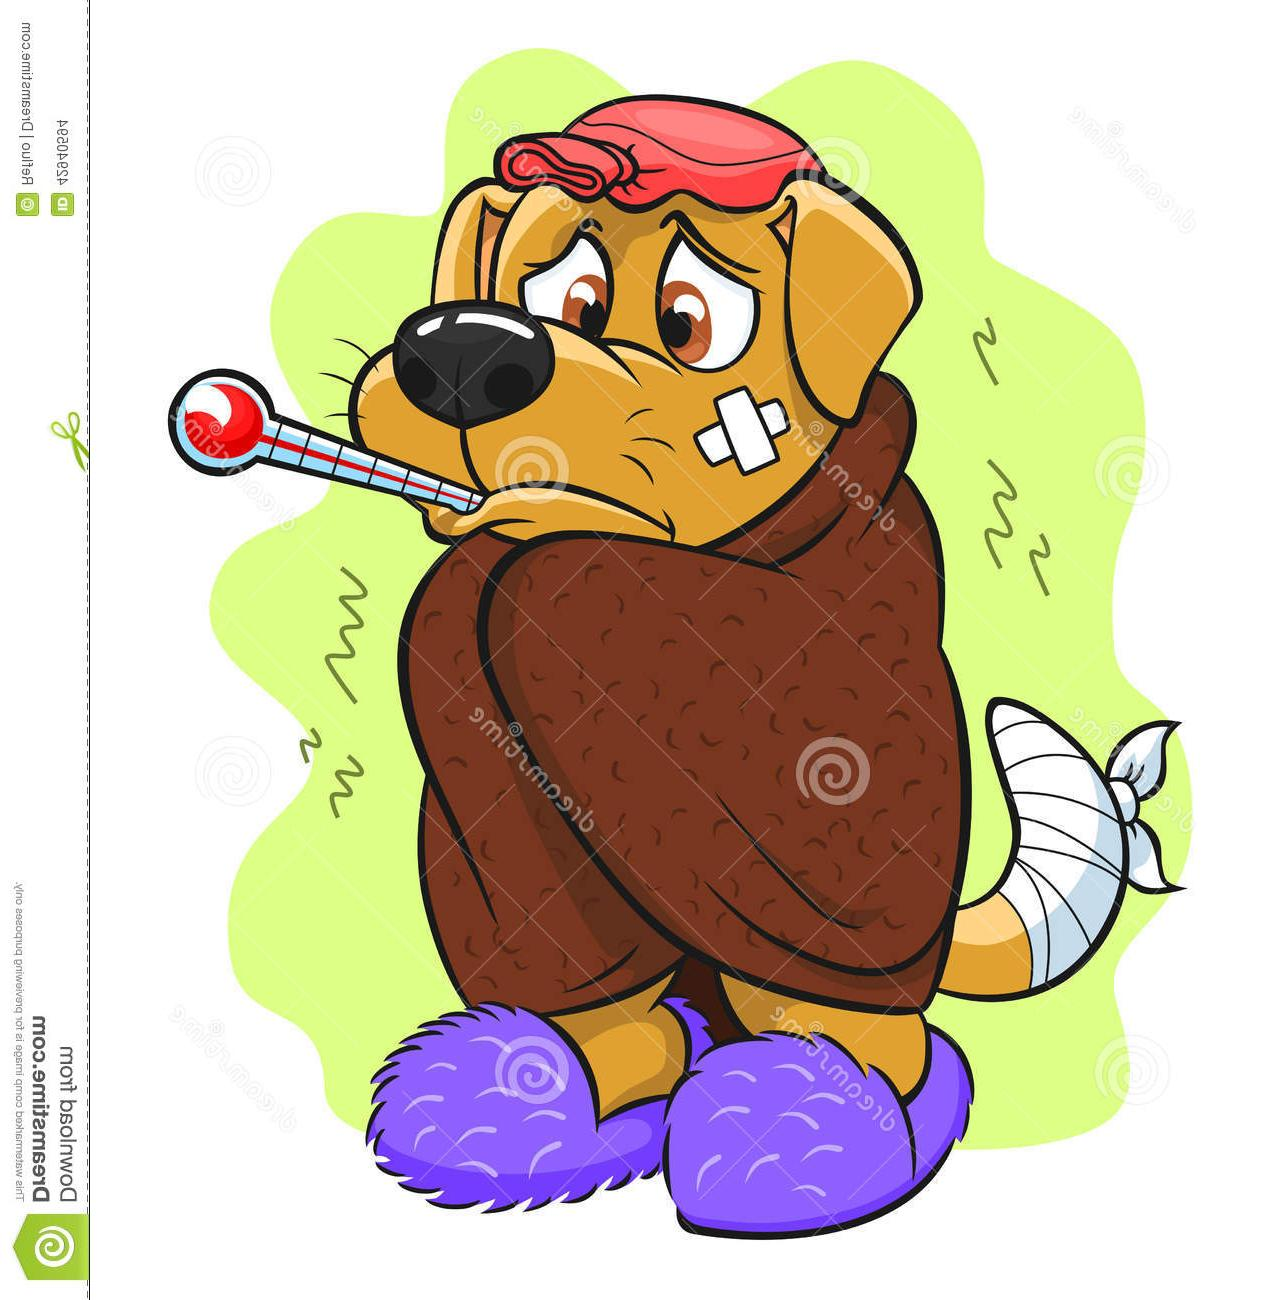 Top Sick Dog Cartoon Vector File Free » Free Vector Art.